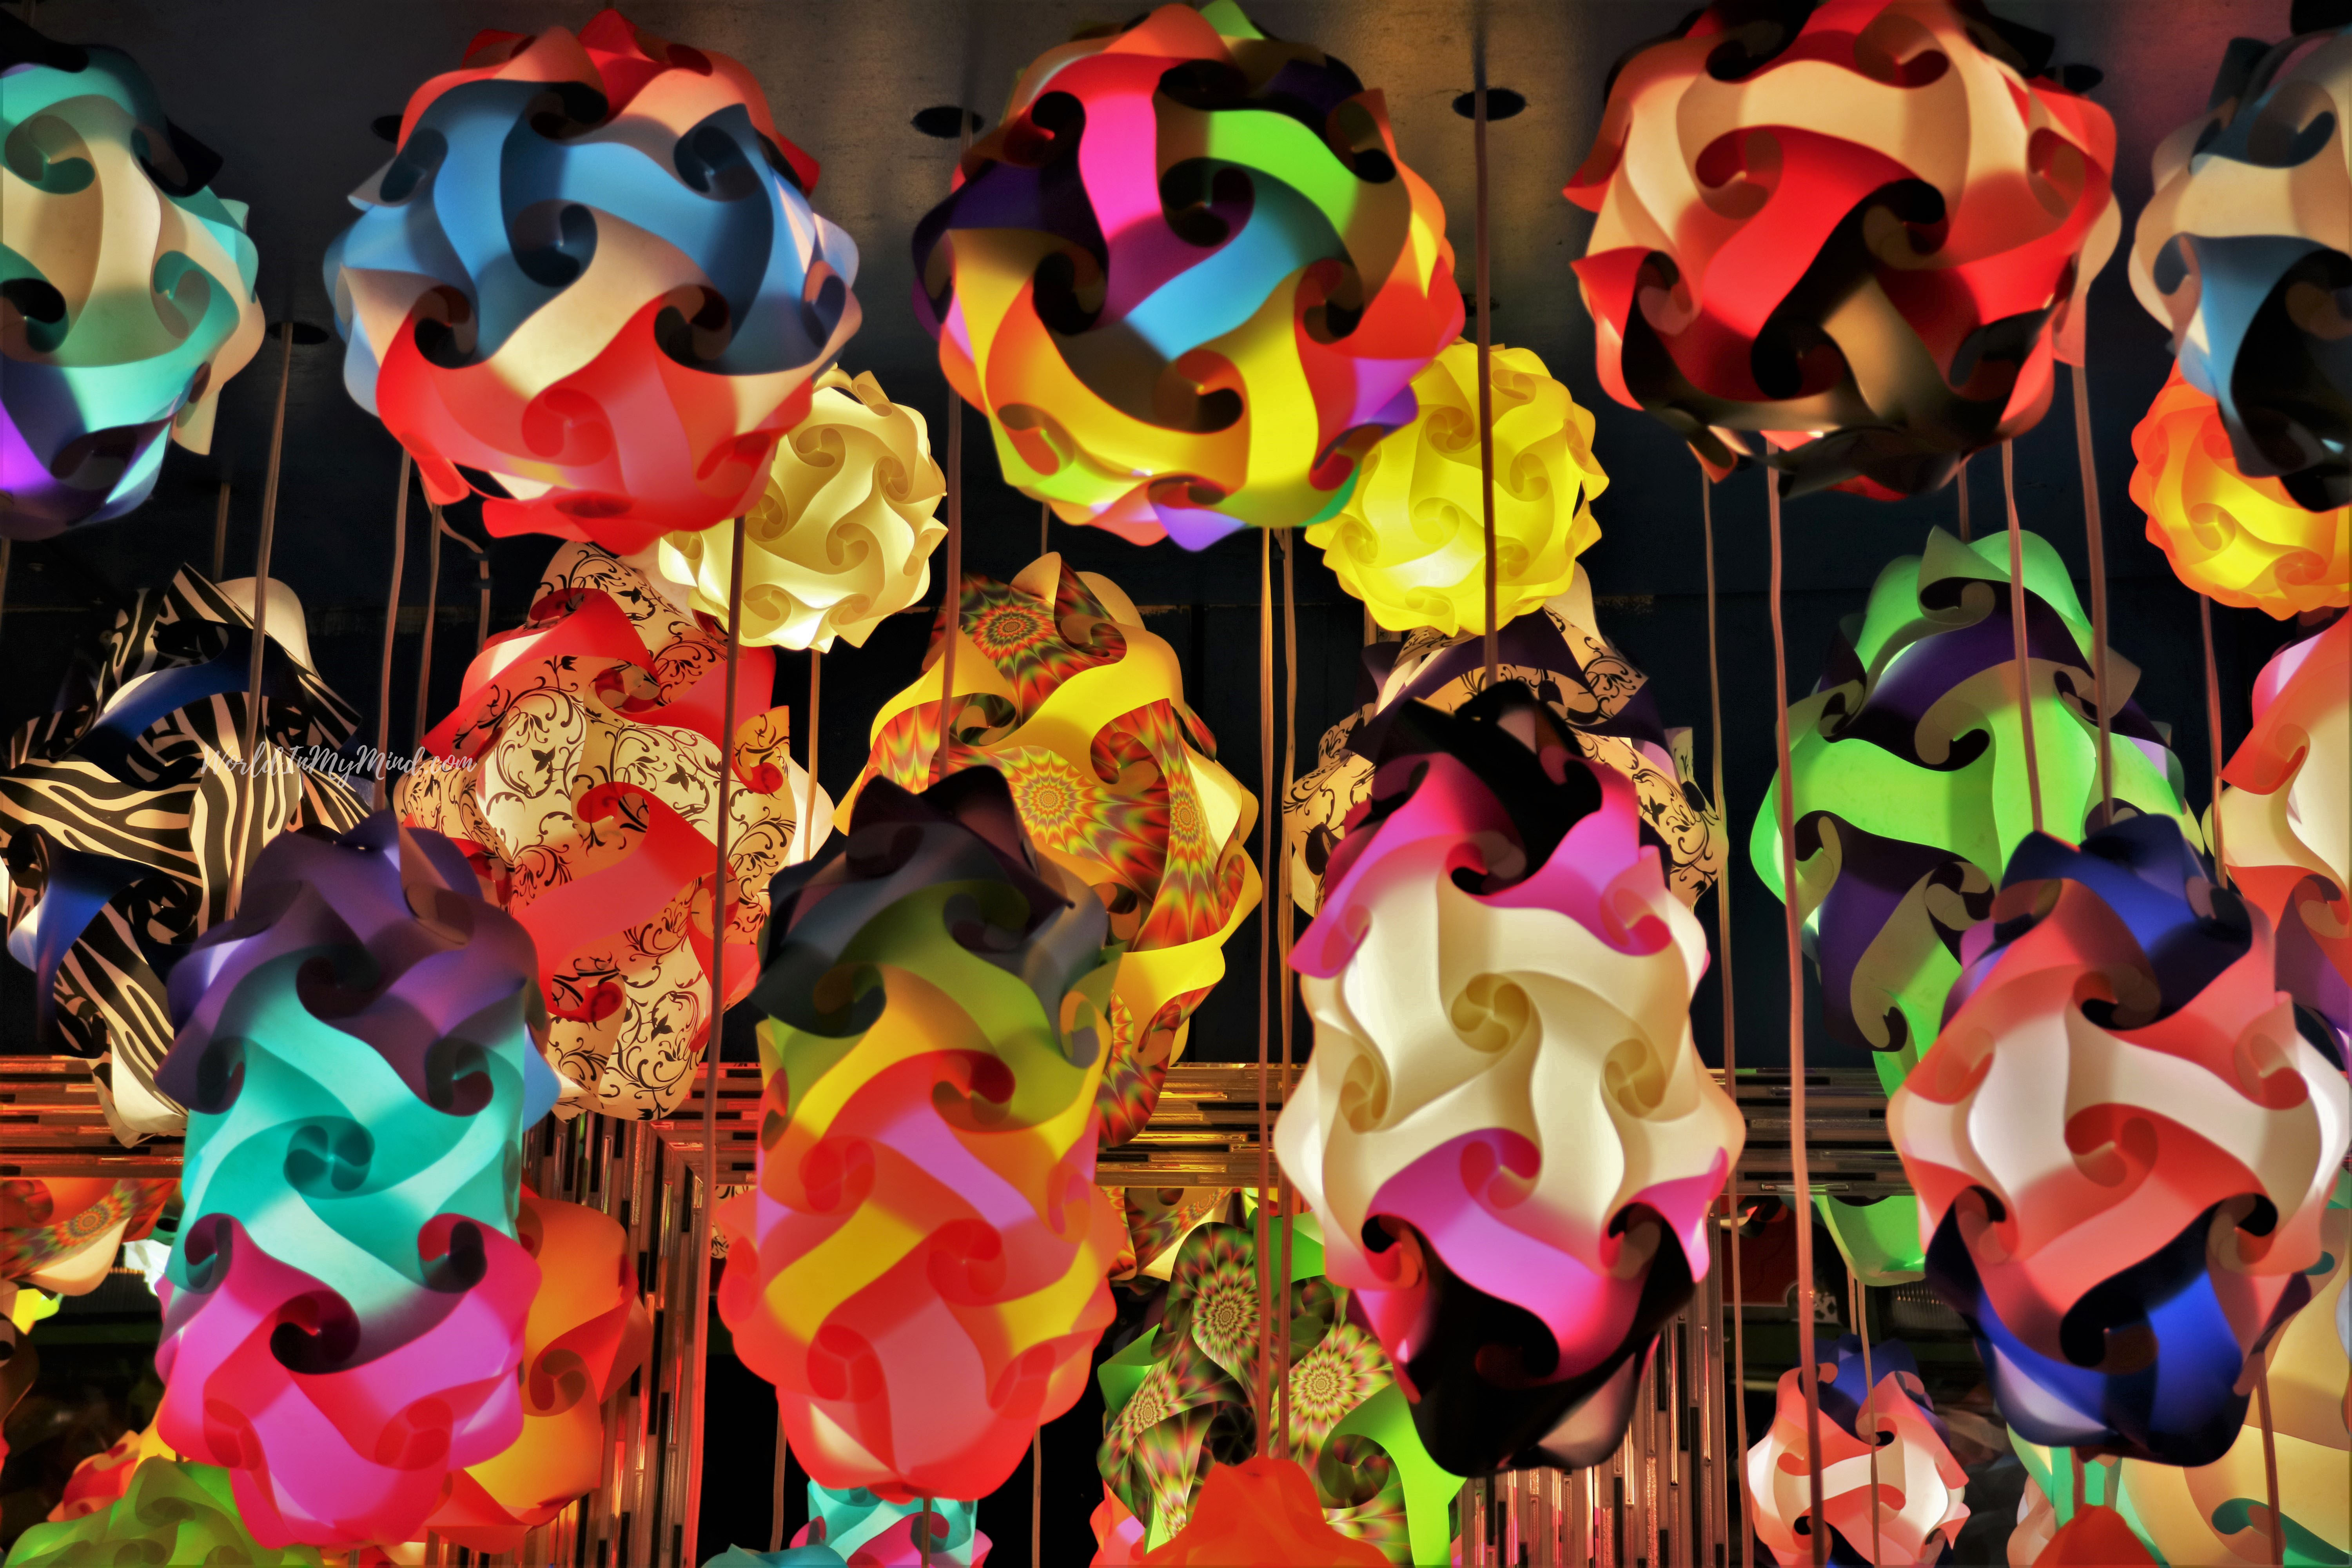 Colorful lamps in New York City